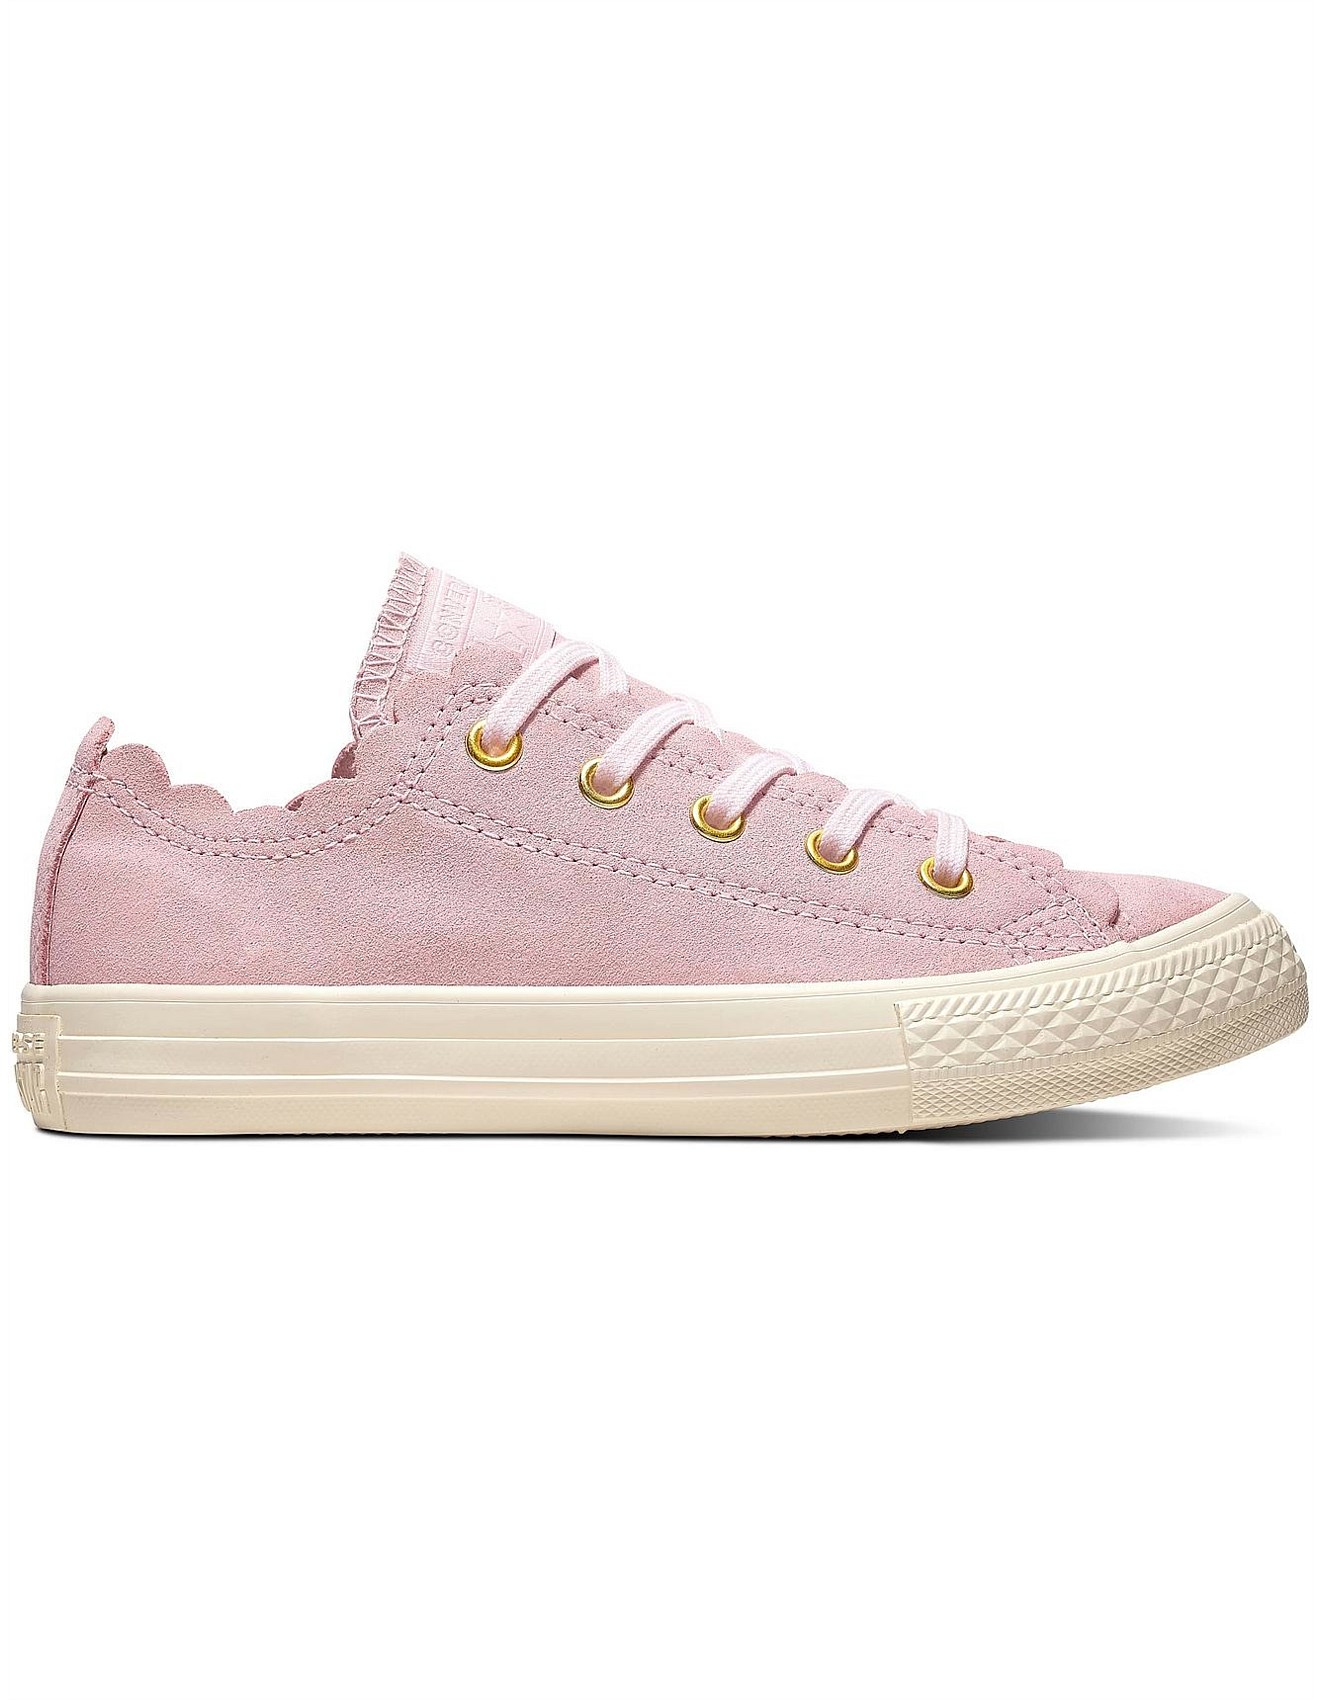 CHUCK TAYLOR ALL STAR FRILLY THRILLS OX